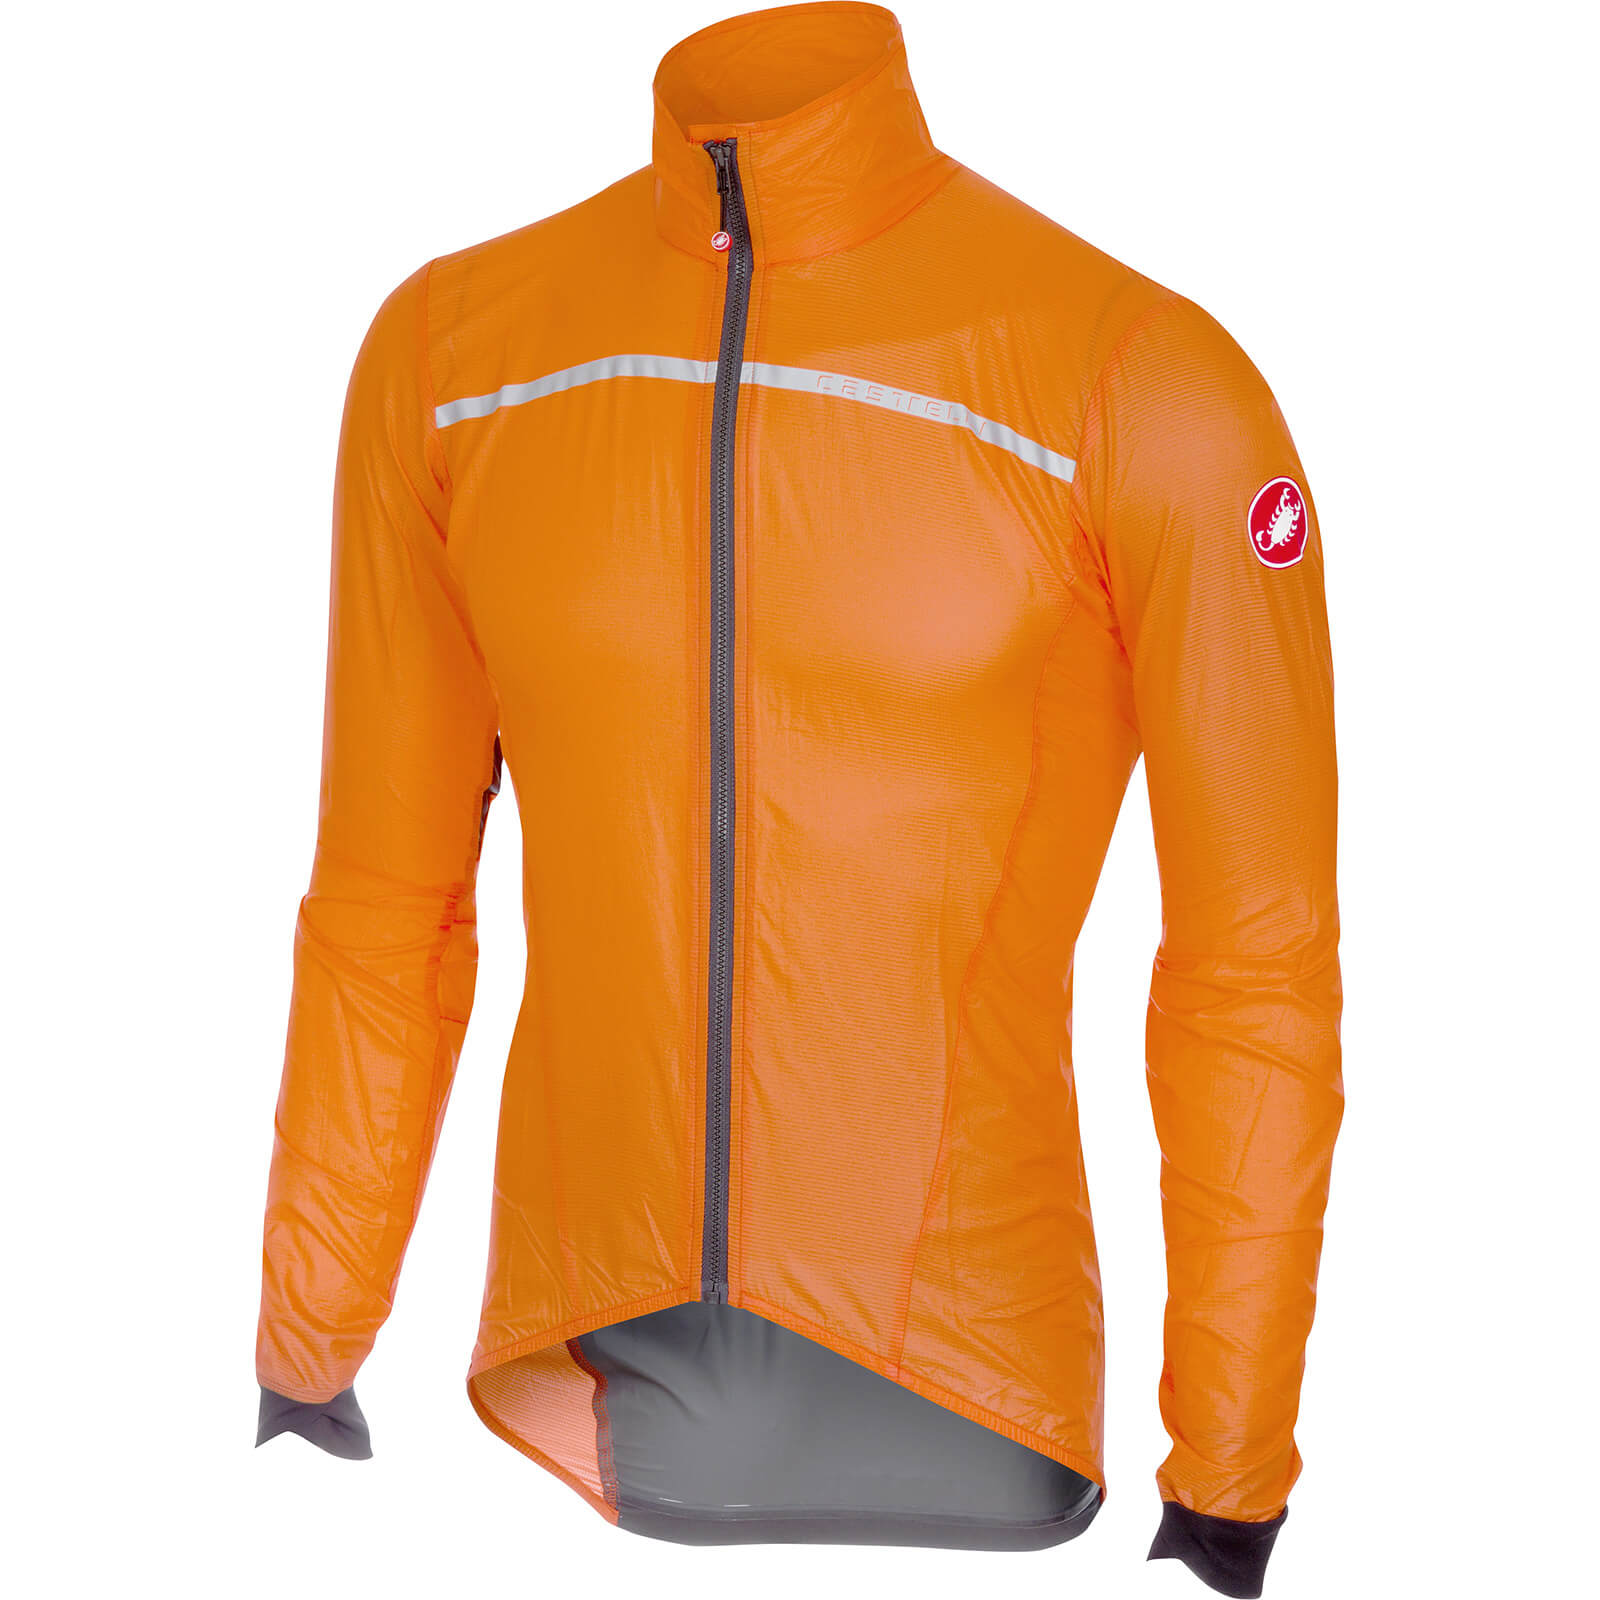 Castelli Superleggera Jacket - Orange